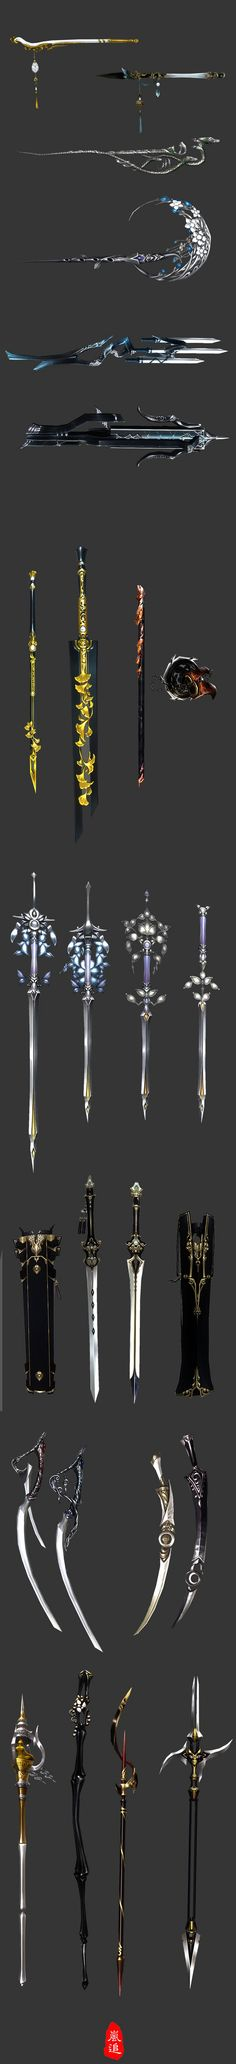 These weapon designs are so dynamic in creativity--I especially love the fourth one down, it has a feminine quality, but the rounded structure makes it less traditional from a weapon design.